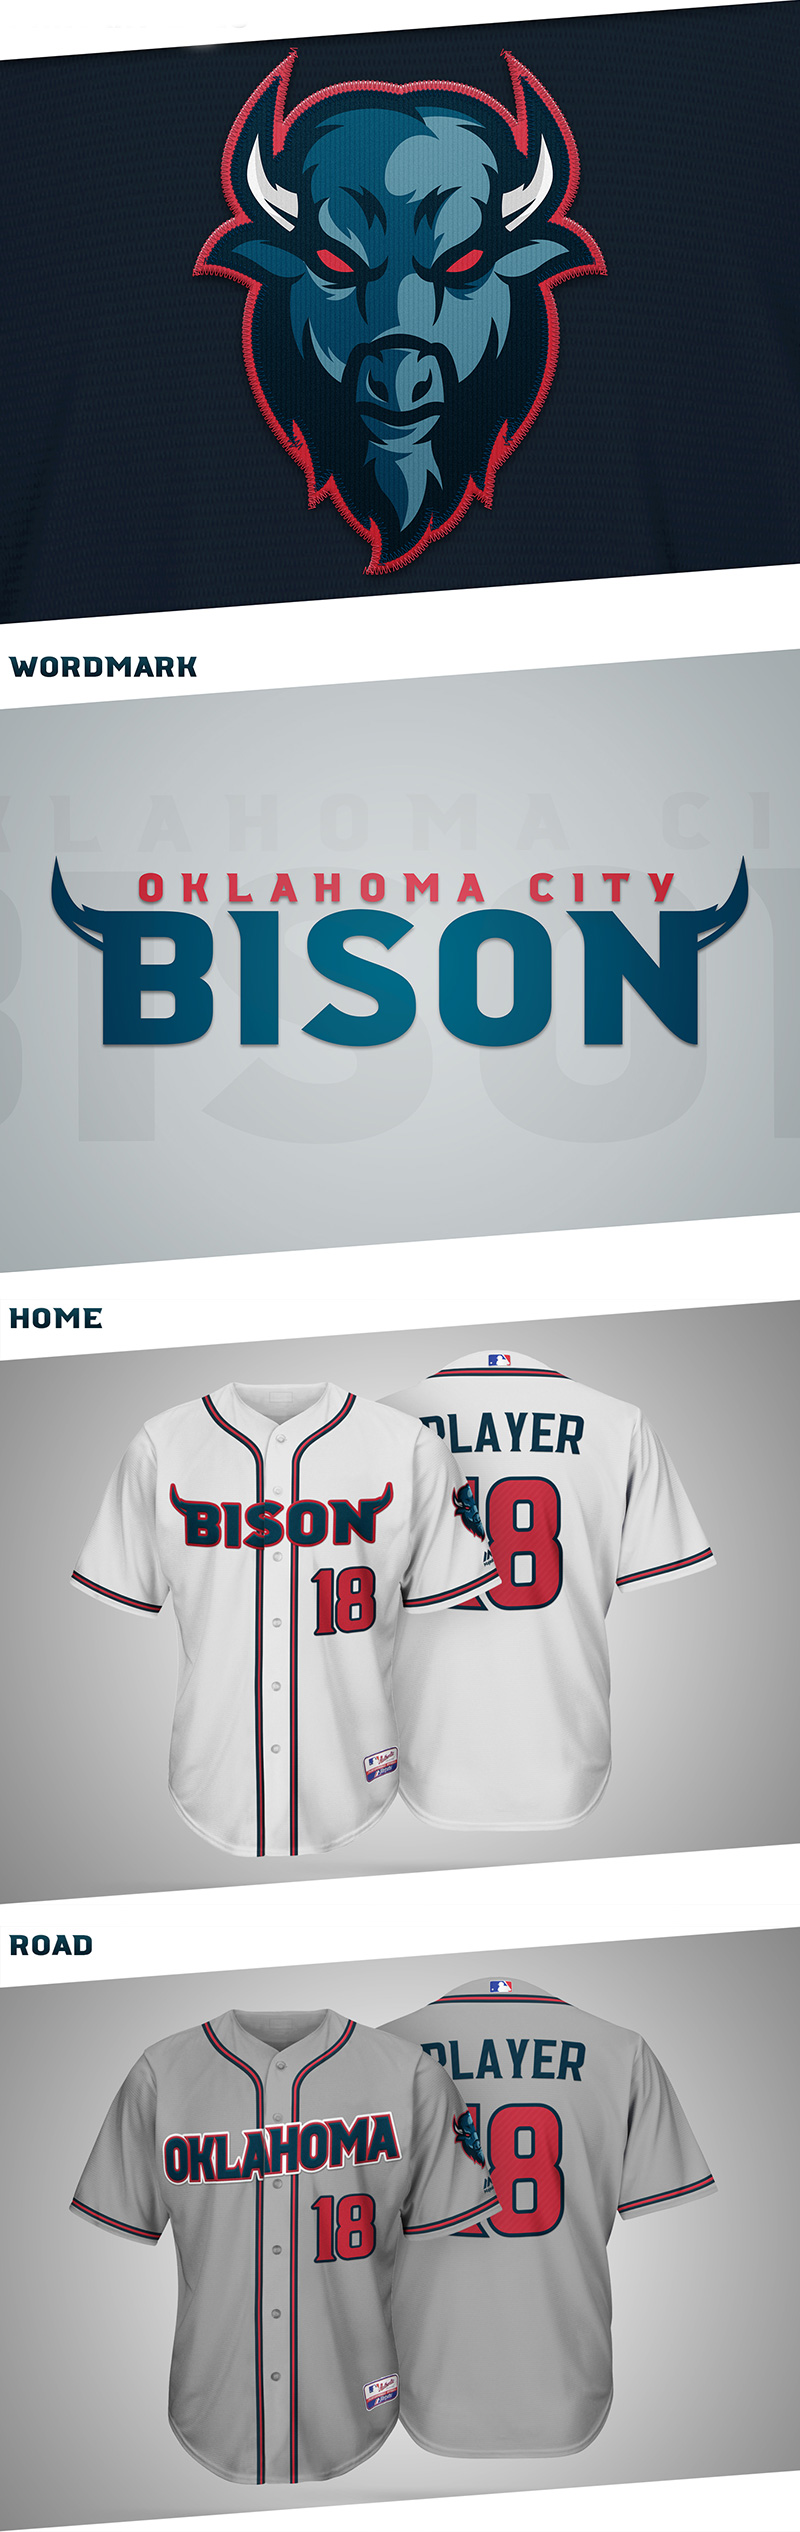 OKC Bison- MLB Expansion Team Concept by Ryan Lane